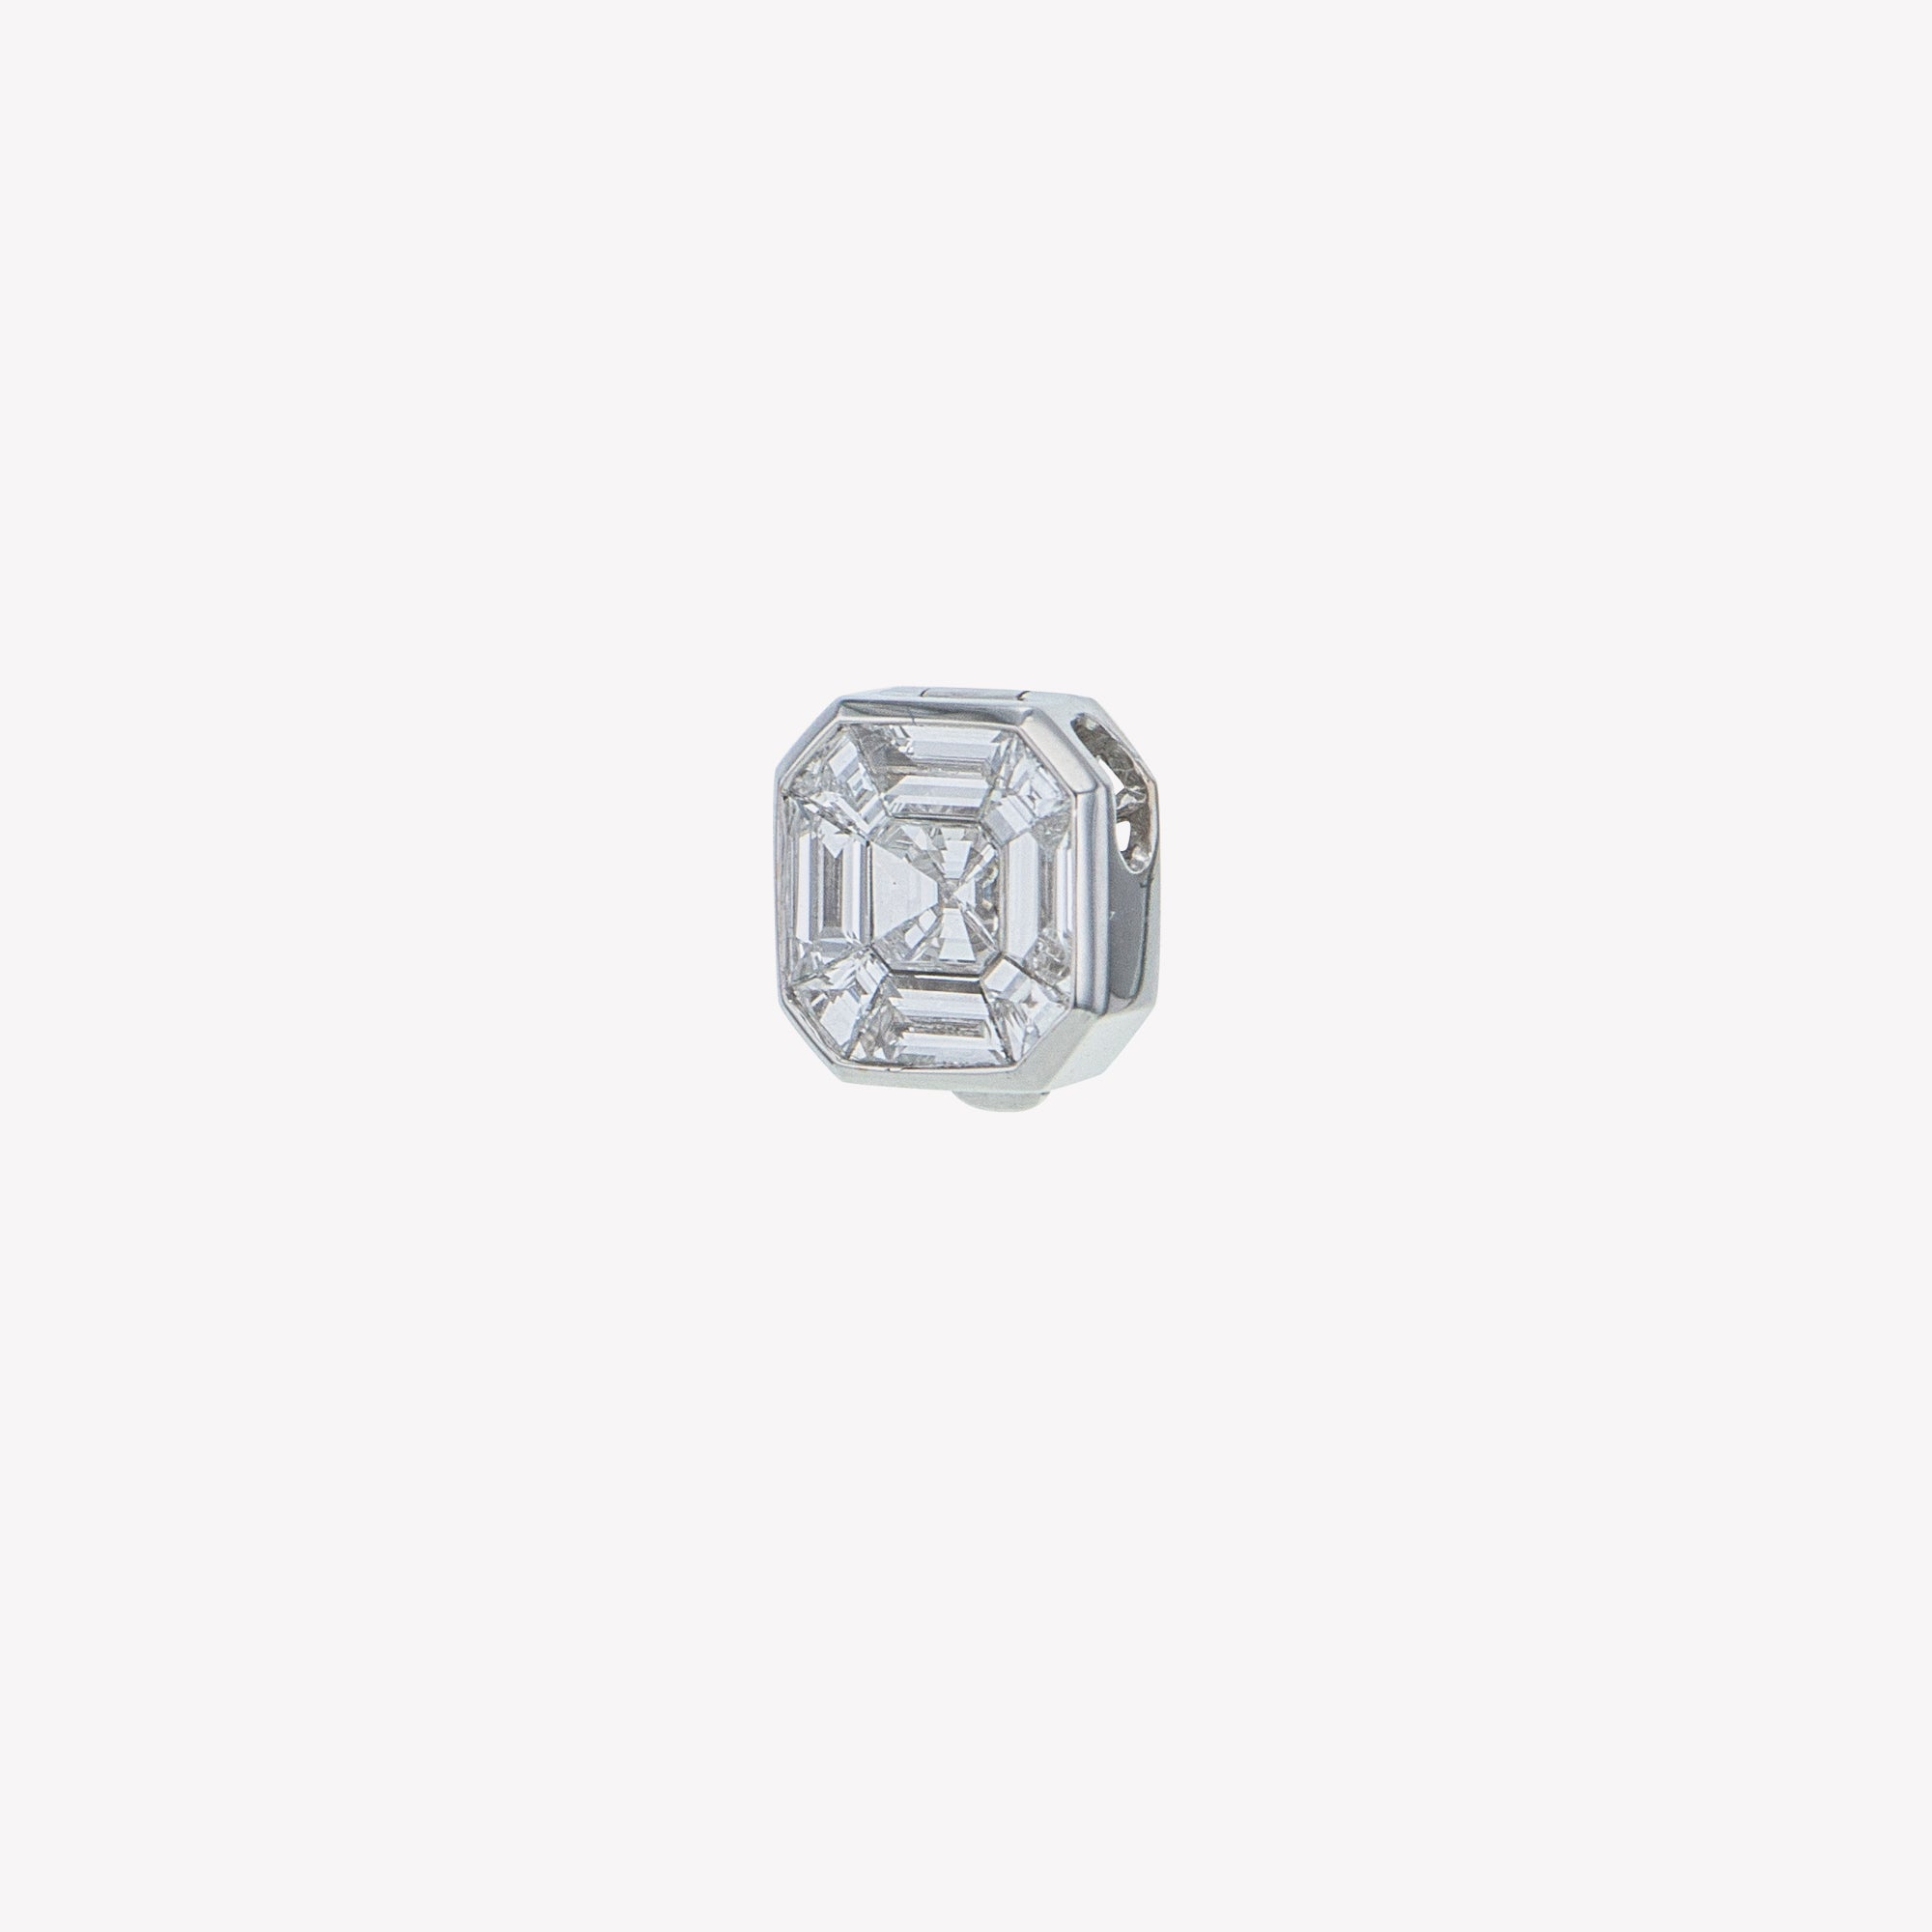 Detachable White Gold Asscher Head with Octa Band